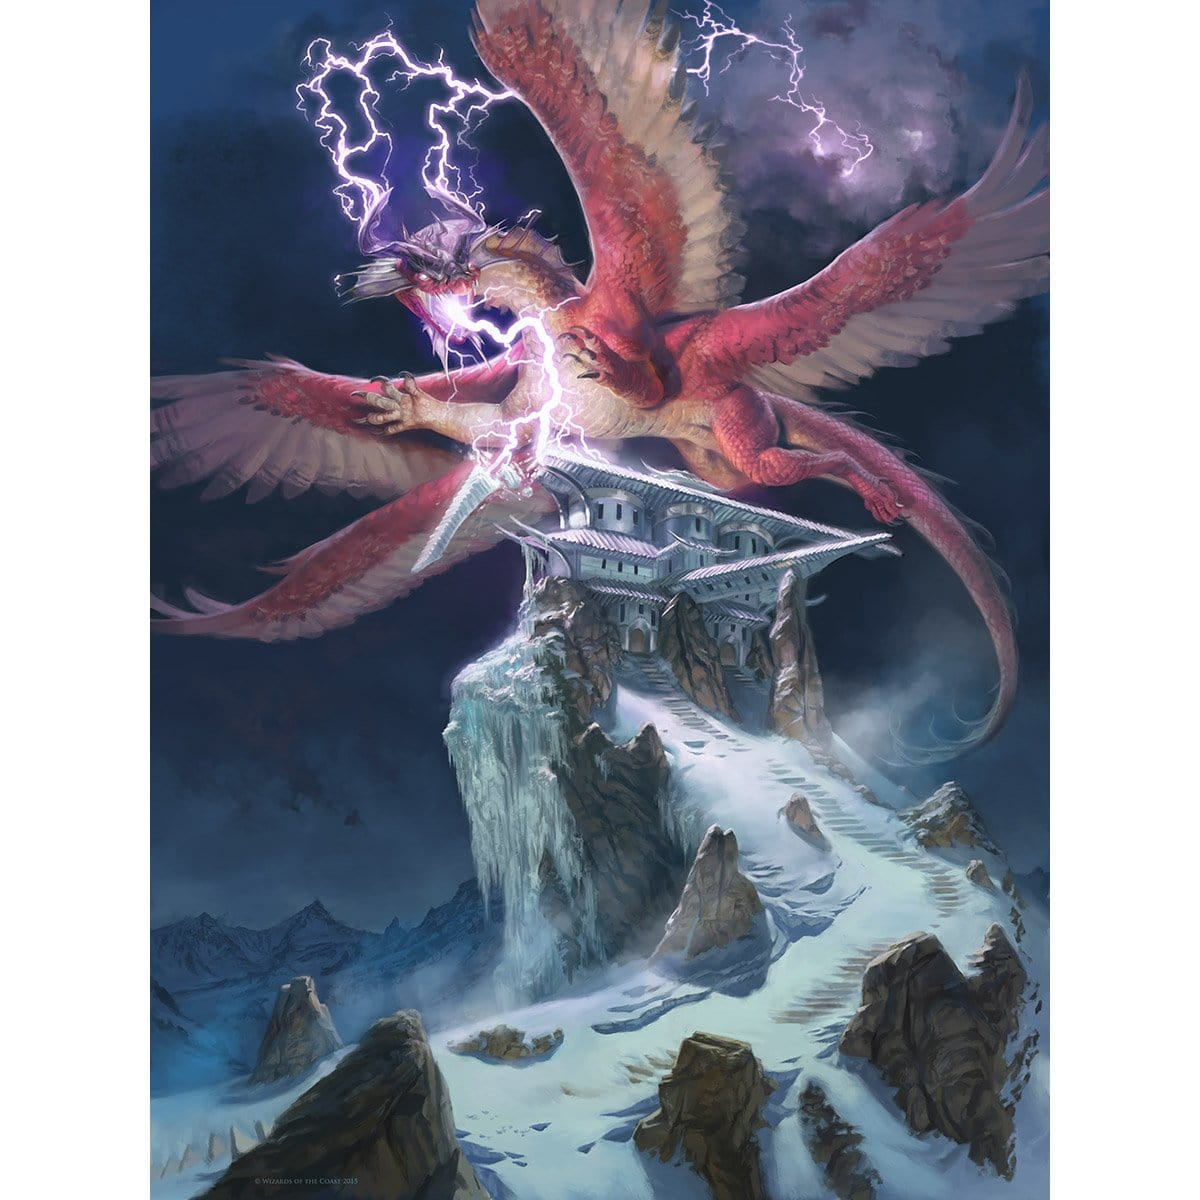 Thunderbreak Regent Print - Print - Original Magic Art - Accessories for Magic the Gathering and other card games